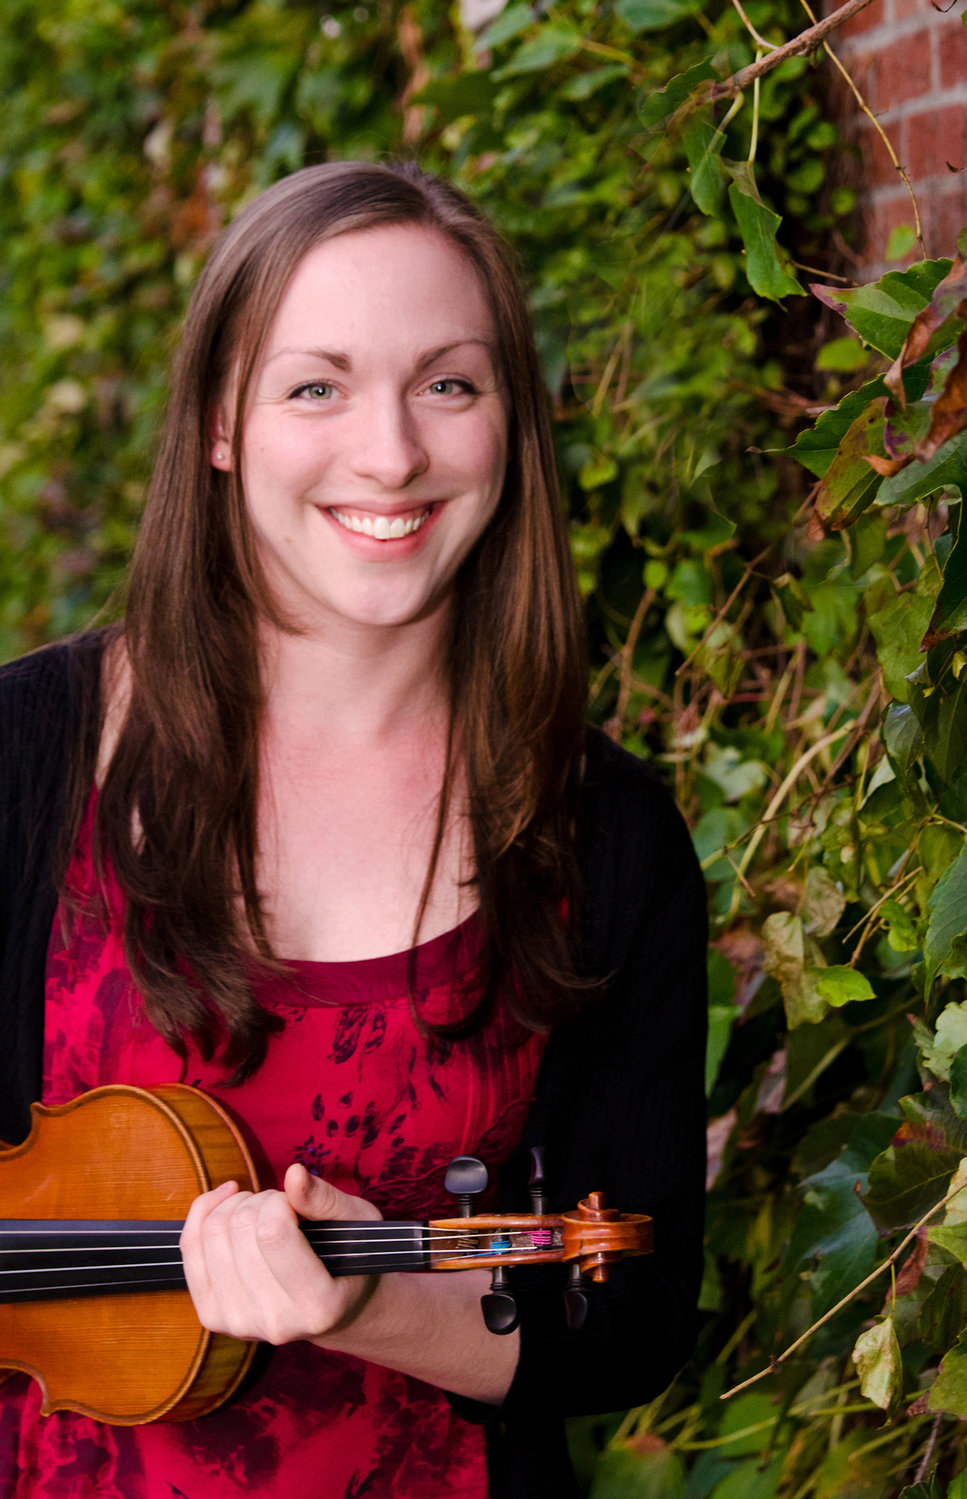 Julie Metcalf is the lead fiddler for the Rehoboth contra dance on Friday, March 27